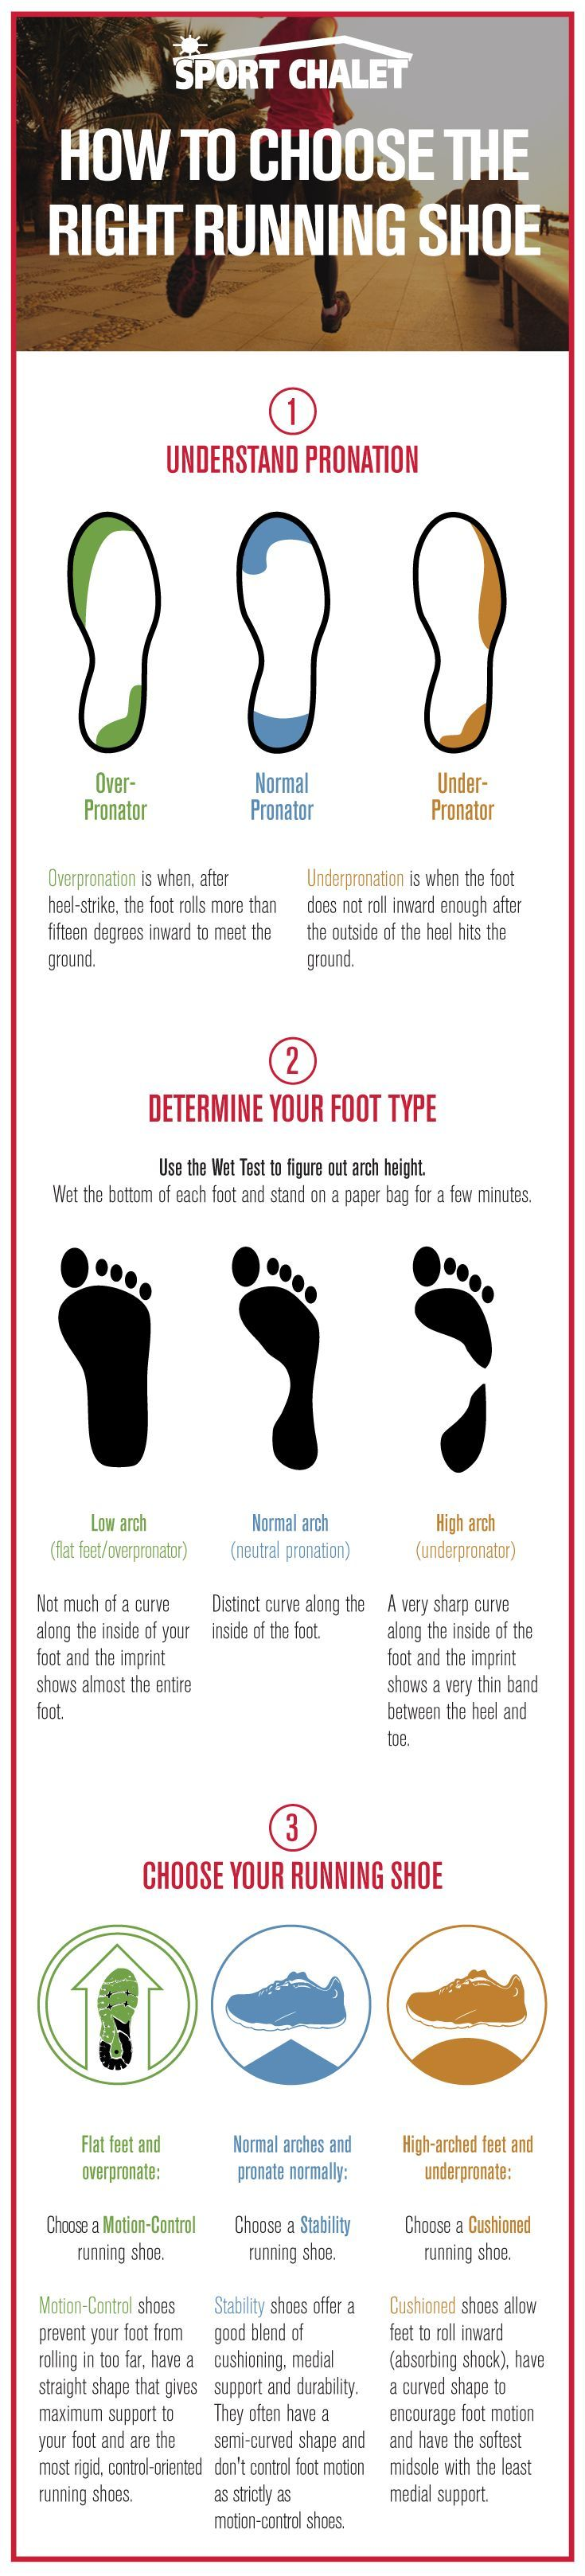 I am an underpronated runner, and this easy-to-follow guide helped me know that I need very cushioned shows to support my high arch. How can you choose the right running shoe for you with this guide?